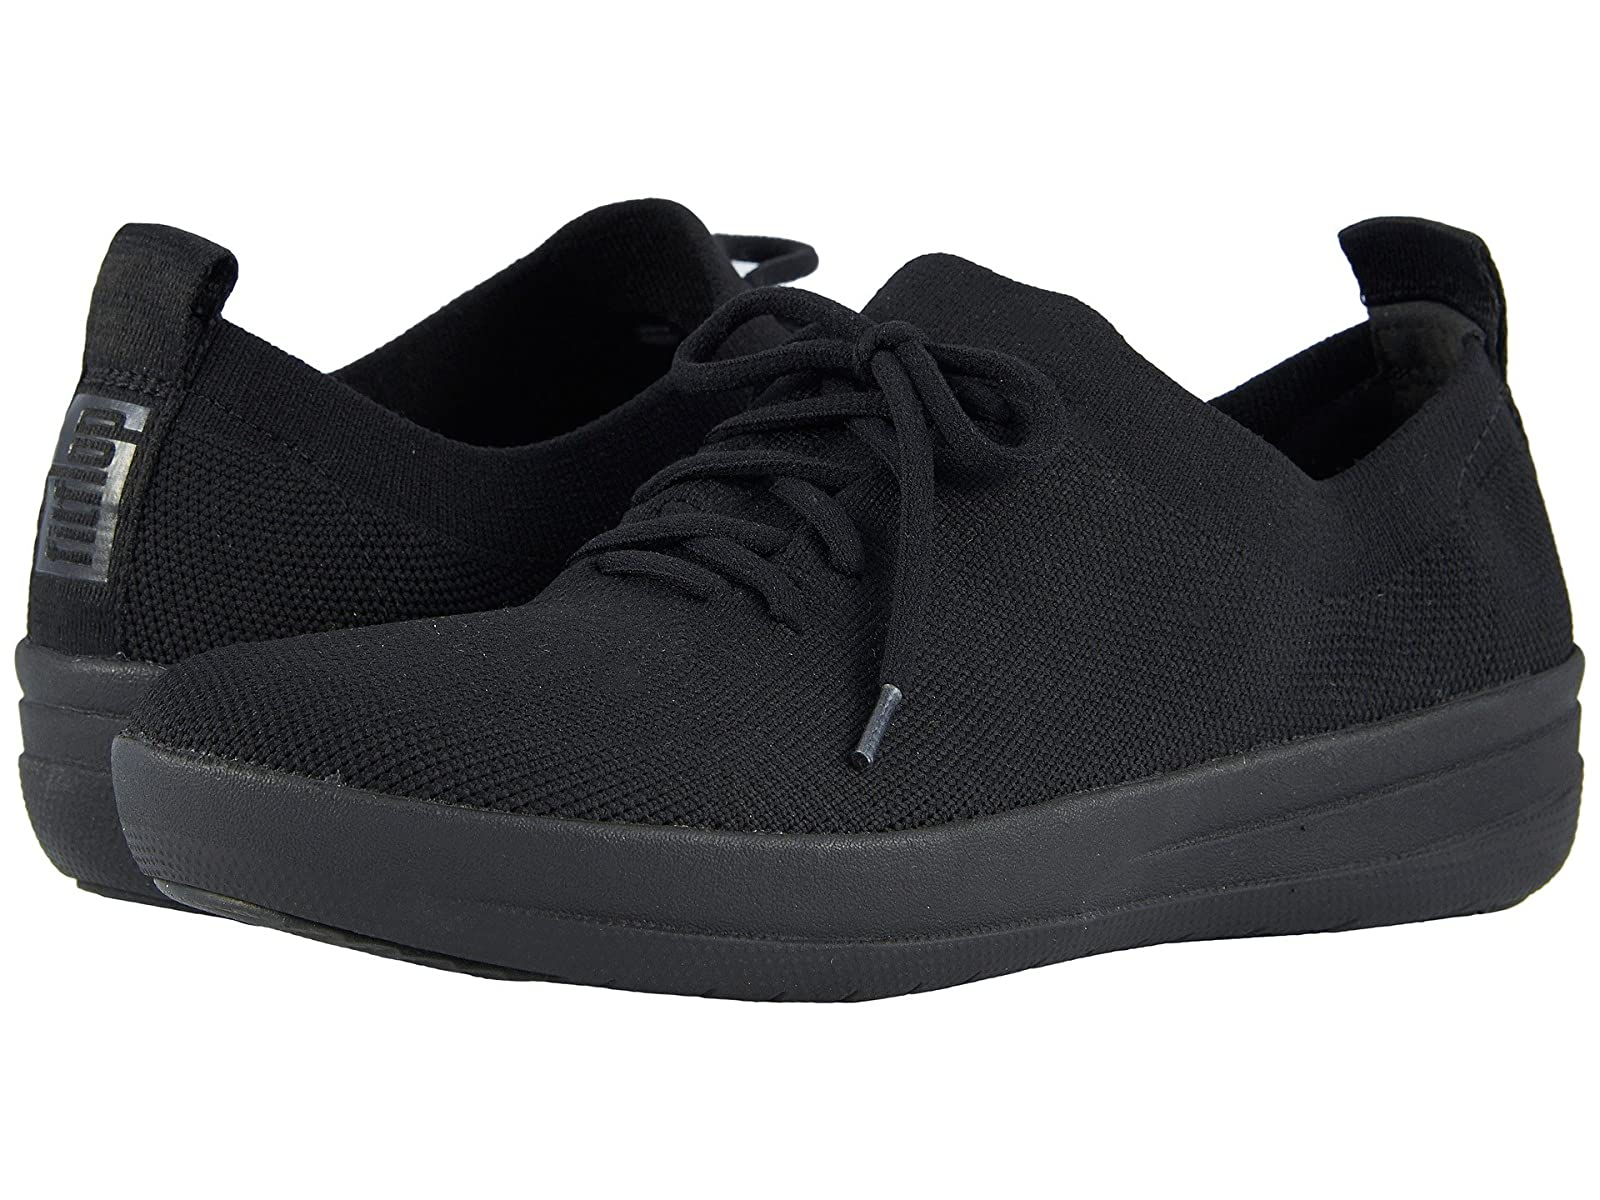 FitFlop F-Sporty Uberknit SneakersAtmospheric grades have affordable shoes